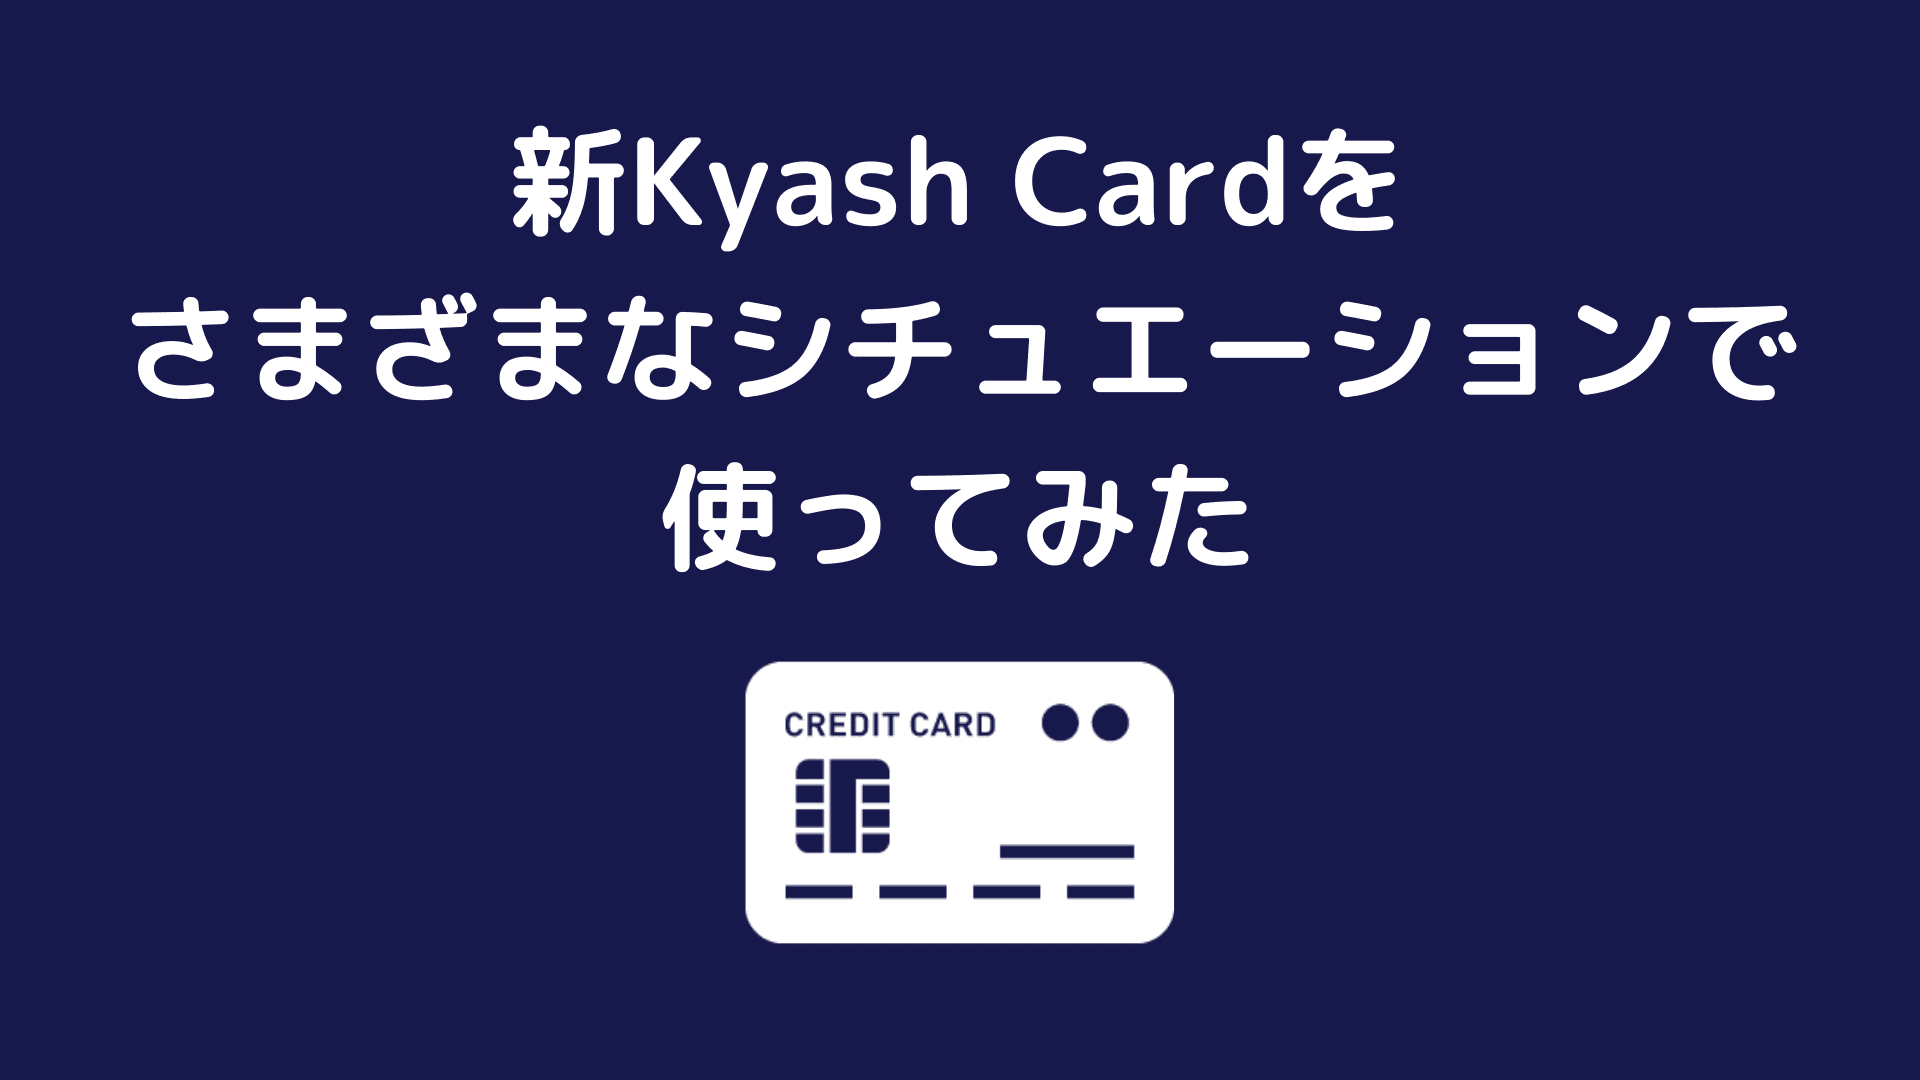 New kyash card use